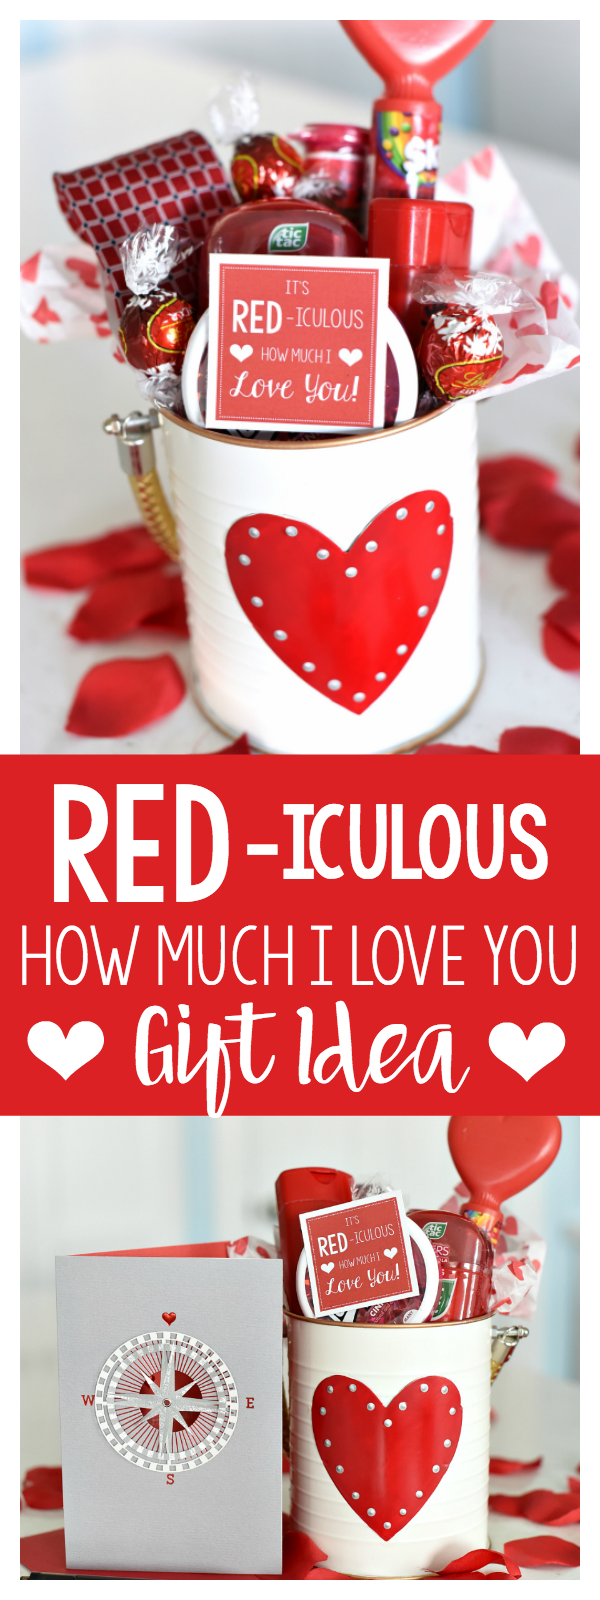 "Cute Valentine's Gift Idea-Red Themed Items and Cute Tag That Says ""It's RED-iculous How Much I LOVE You!"